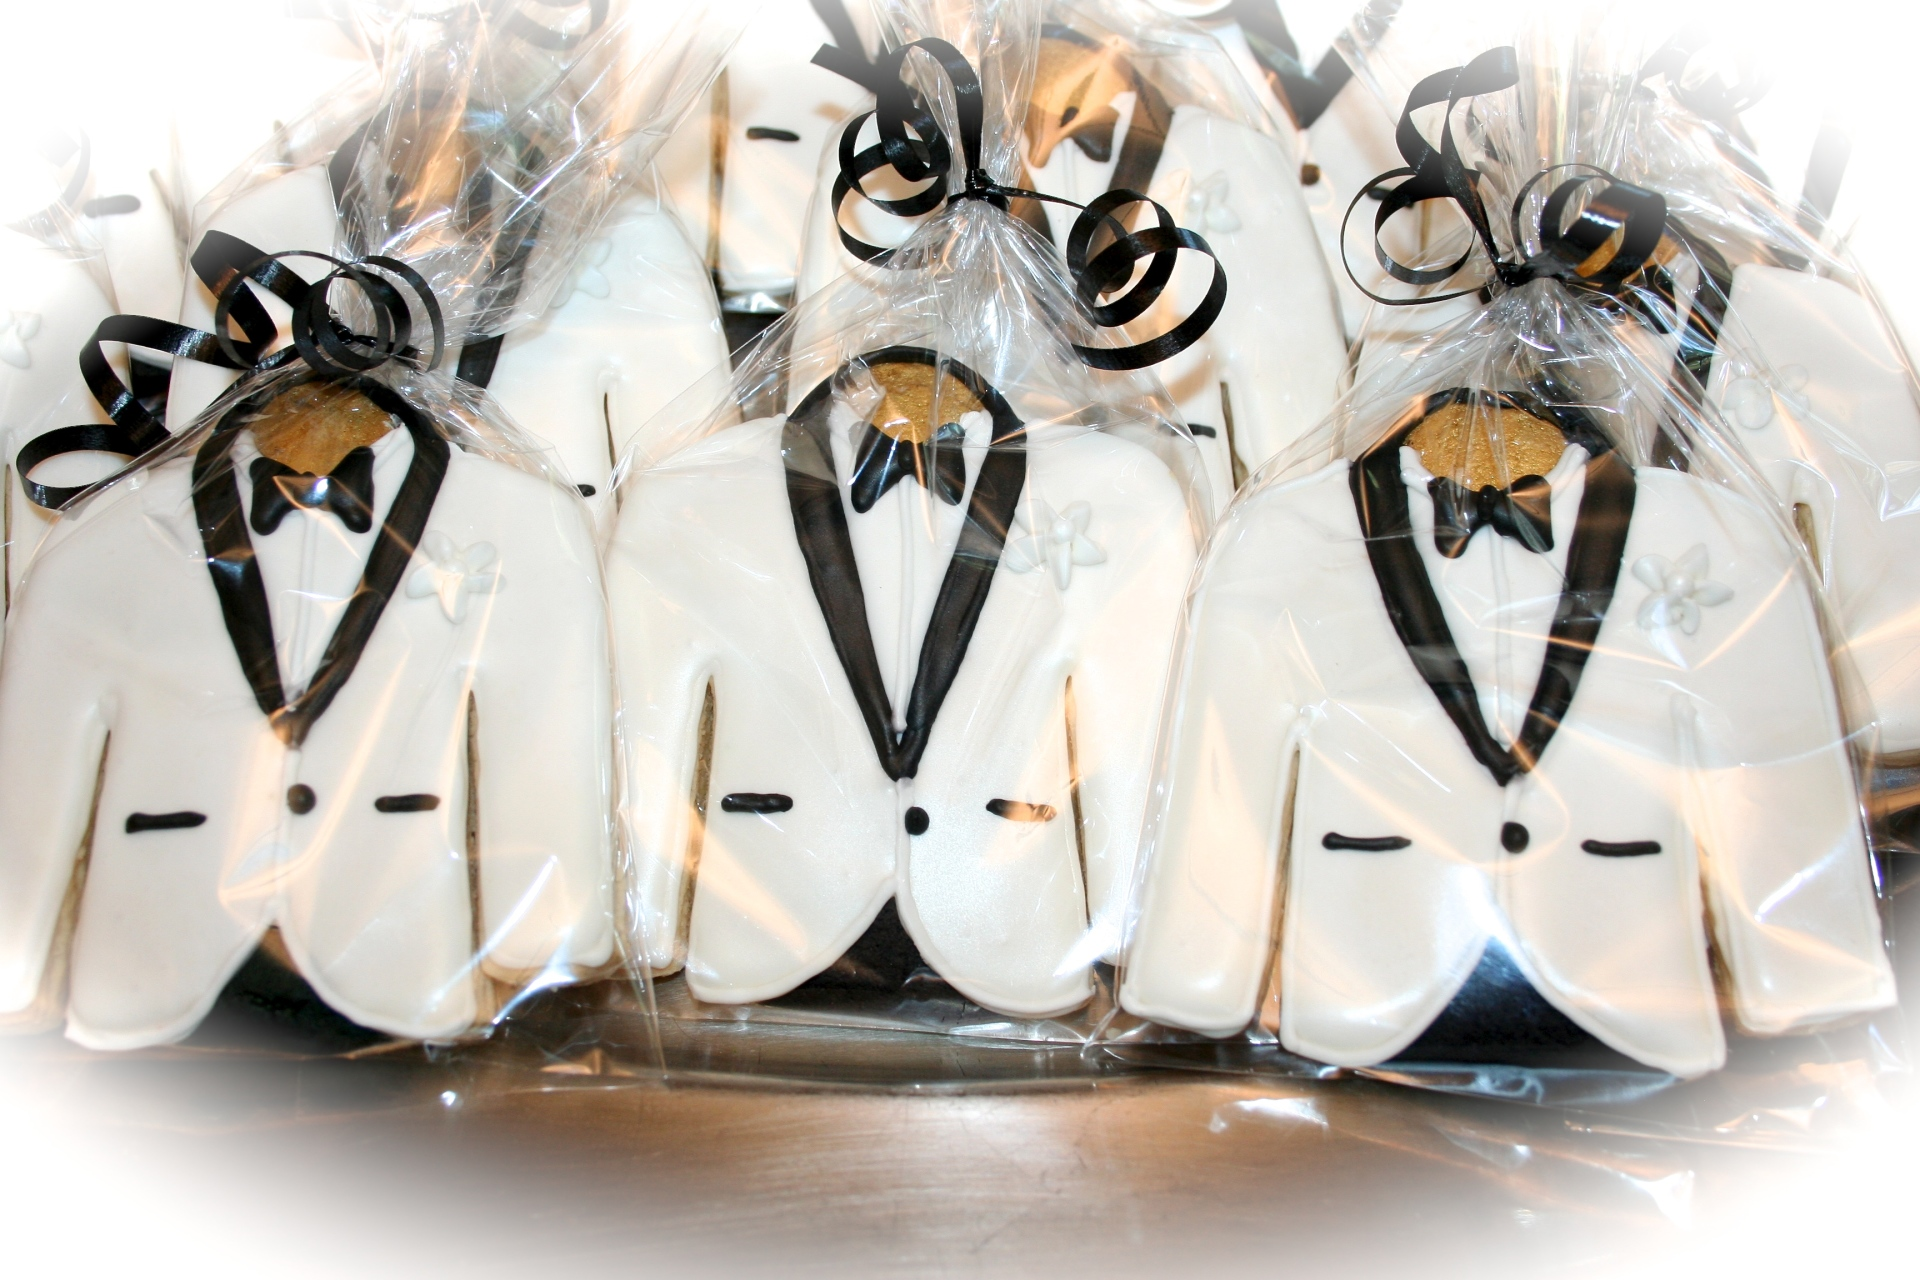 Tuxedo Jacket Custom Sugar Cookies